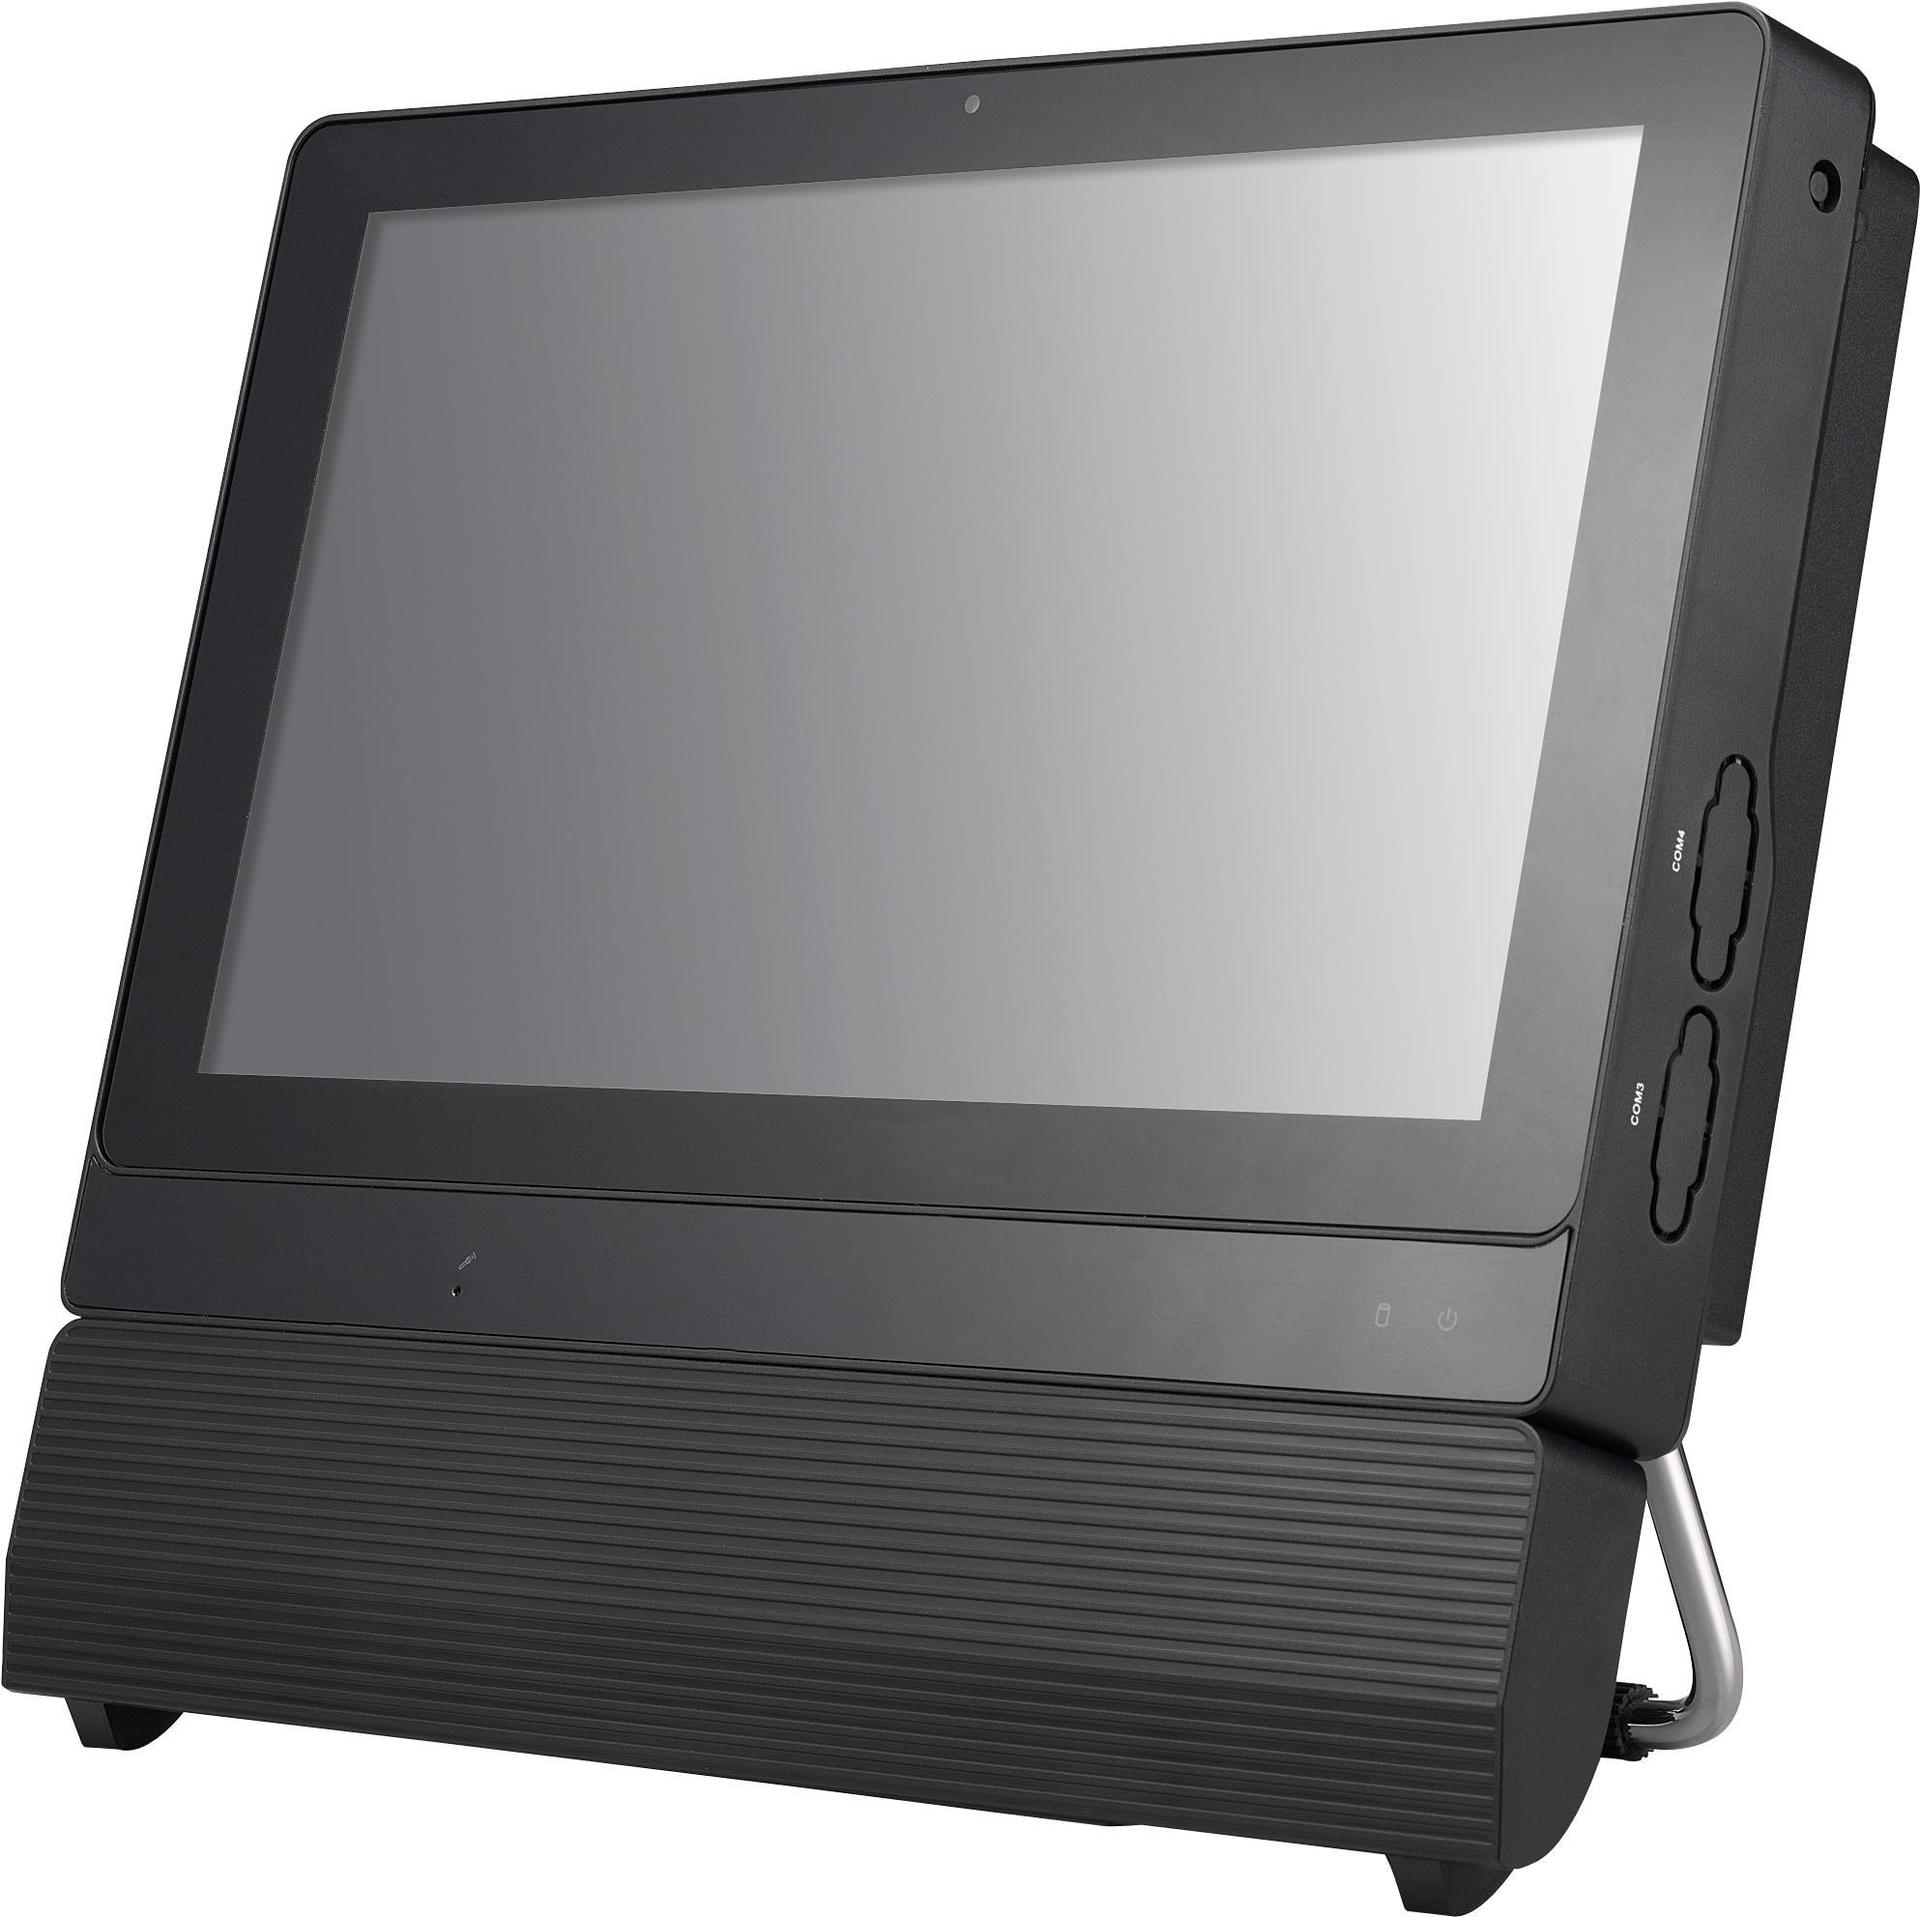 PC Systeme, Computer - Shuttle XPC P20U Barebone All in One (Komplettlösung) 1 x Celeron 3865U 1.8 GHz ULV HD Graphics 610 GigE WLAN 802.11b g n, Bluetooth 4.1 Monitor LED 29.5 cm (11.6) 1366 x 768 (HD) Touchscreen  - Onlineshop JACOB Elektronik